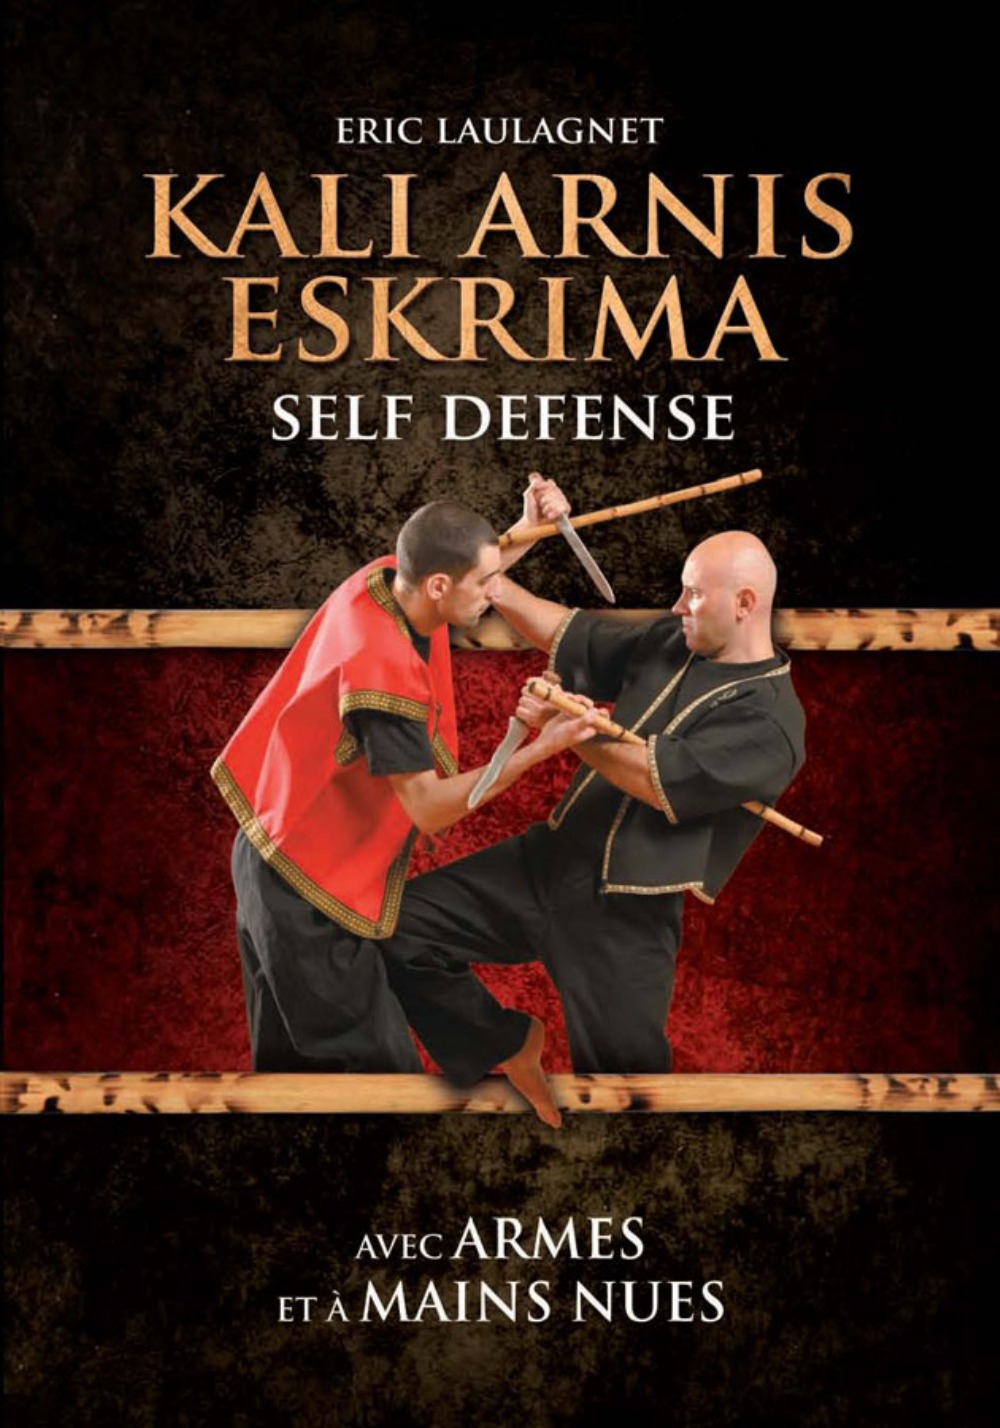 KALI ARNIS ESKRIMA SELF DEFENSE